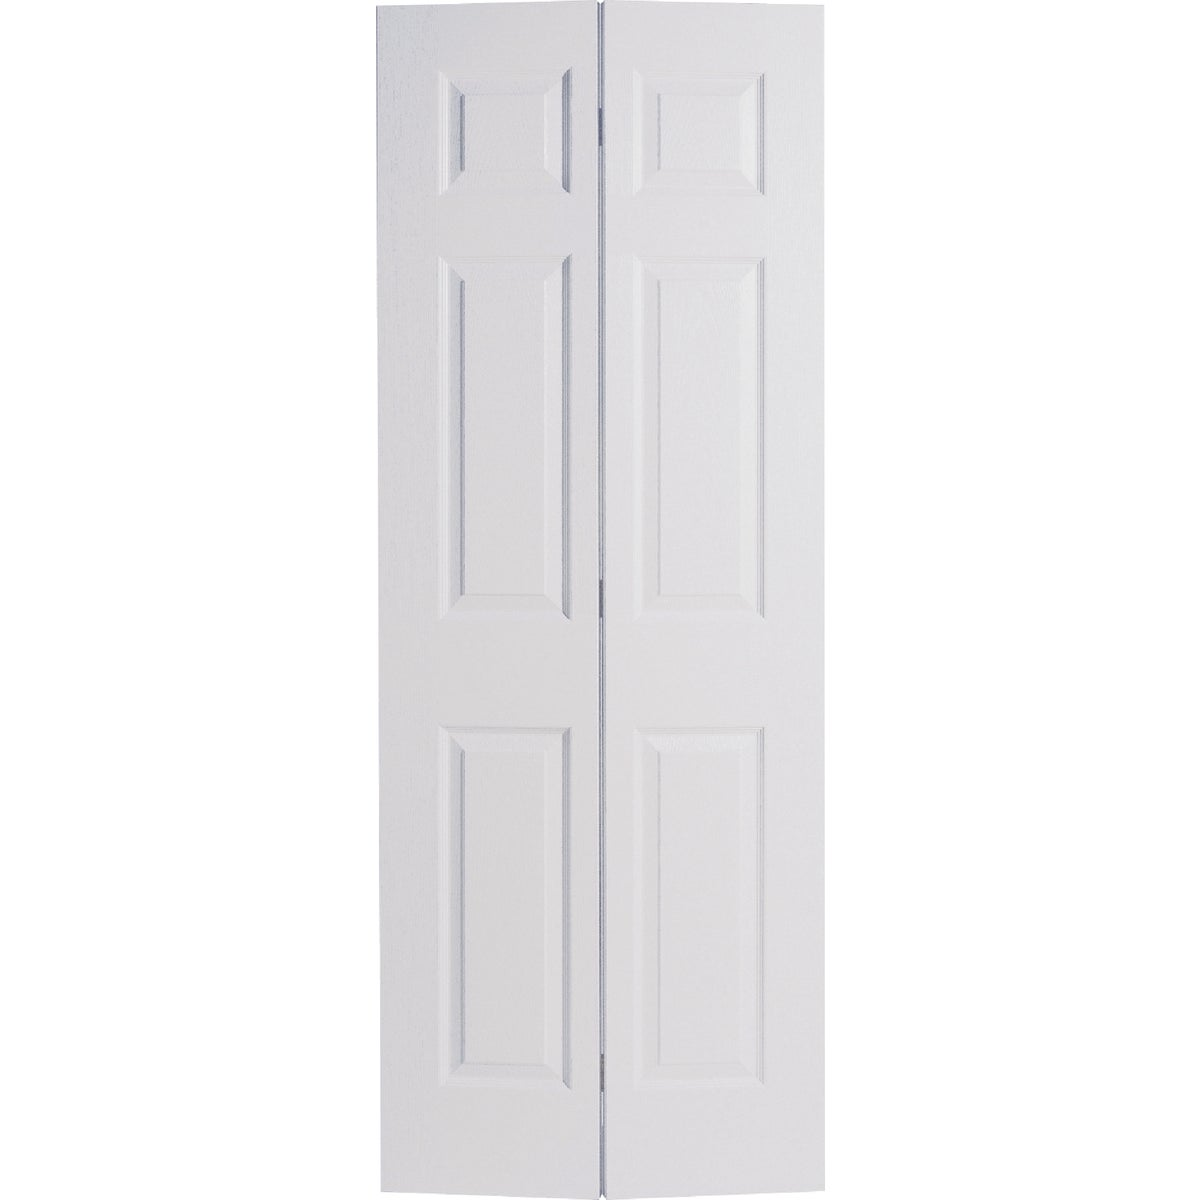 2/8 1-3/8 6PN TX BF DOOR -  by Masonite